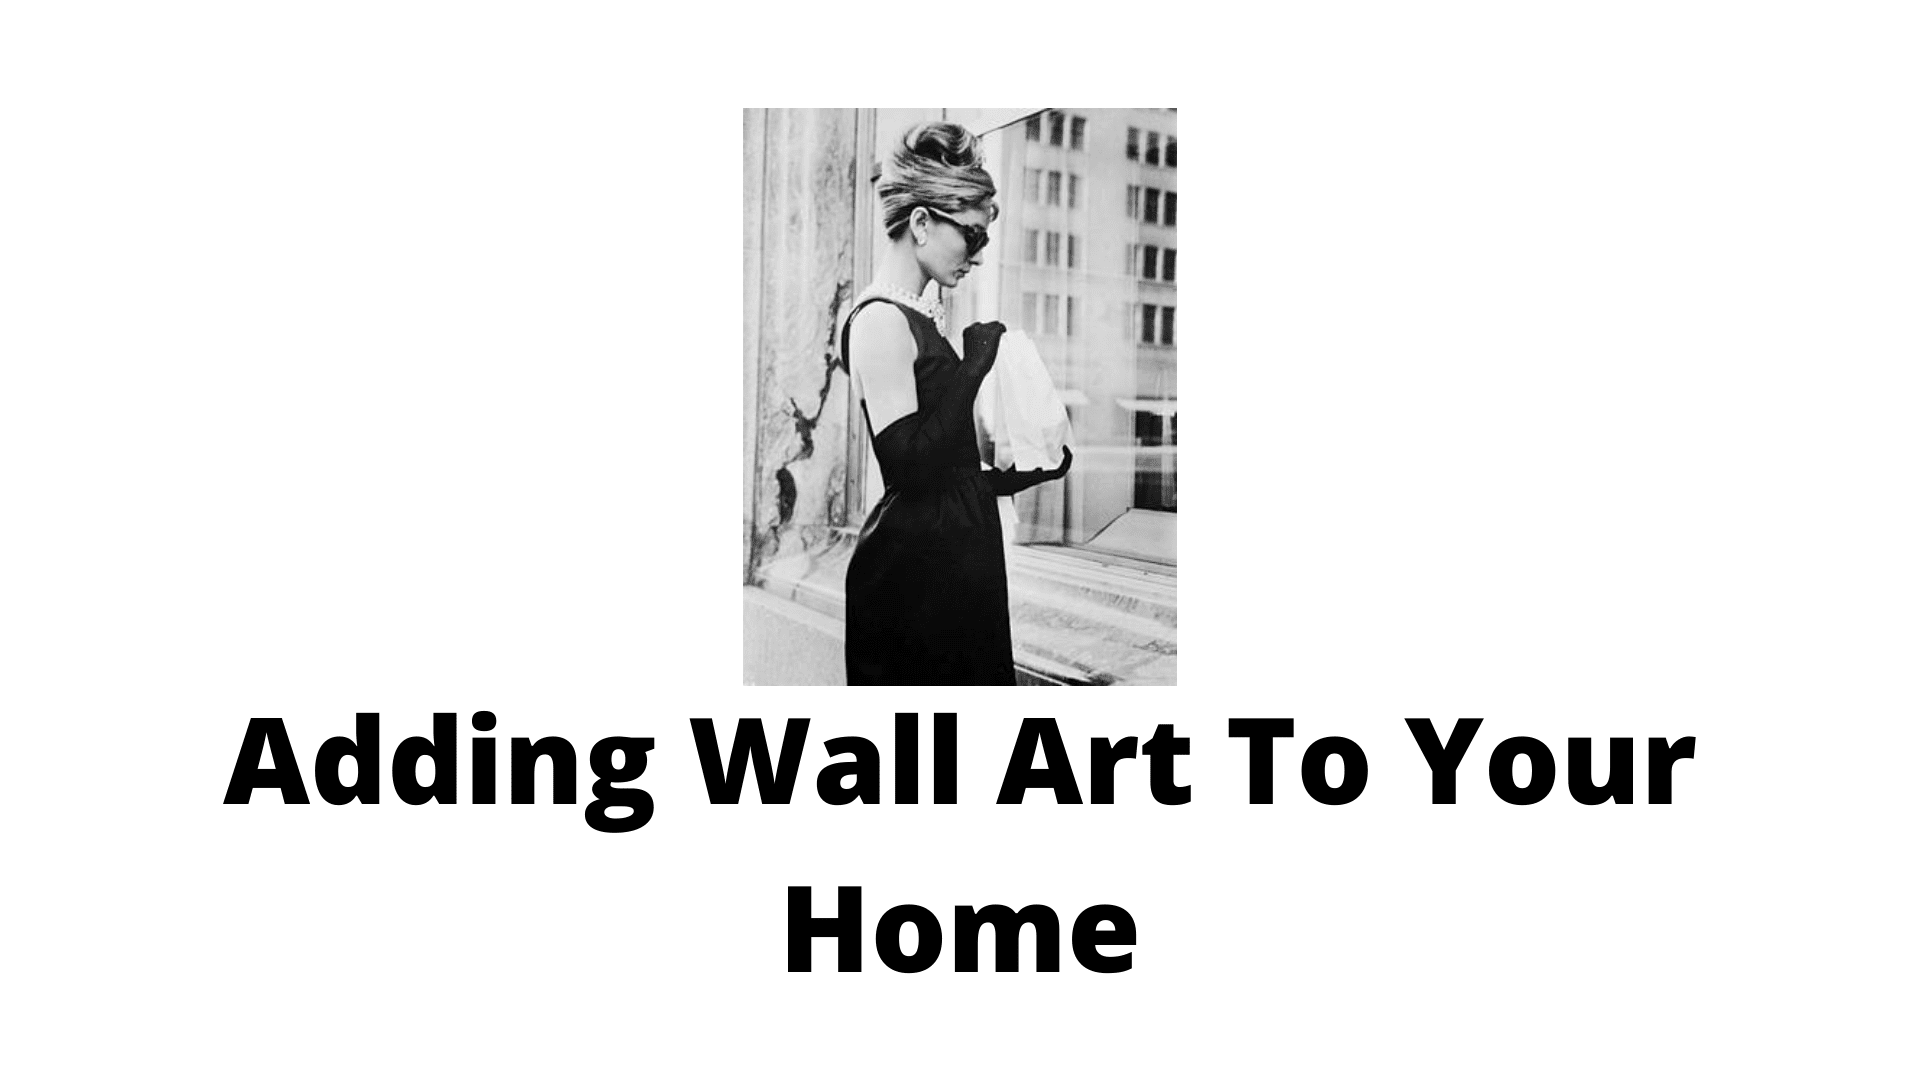 Adding Wall Art To Your Home